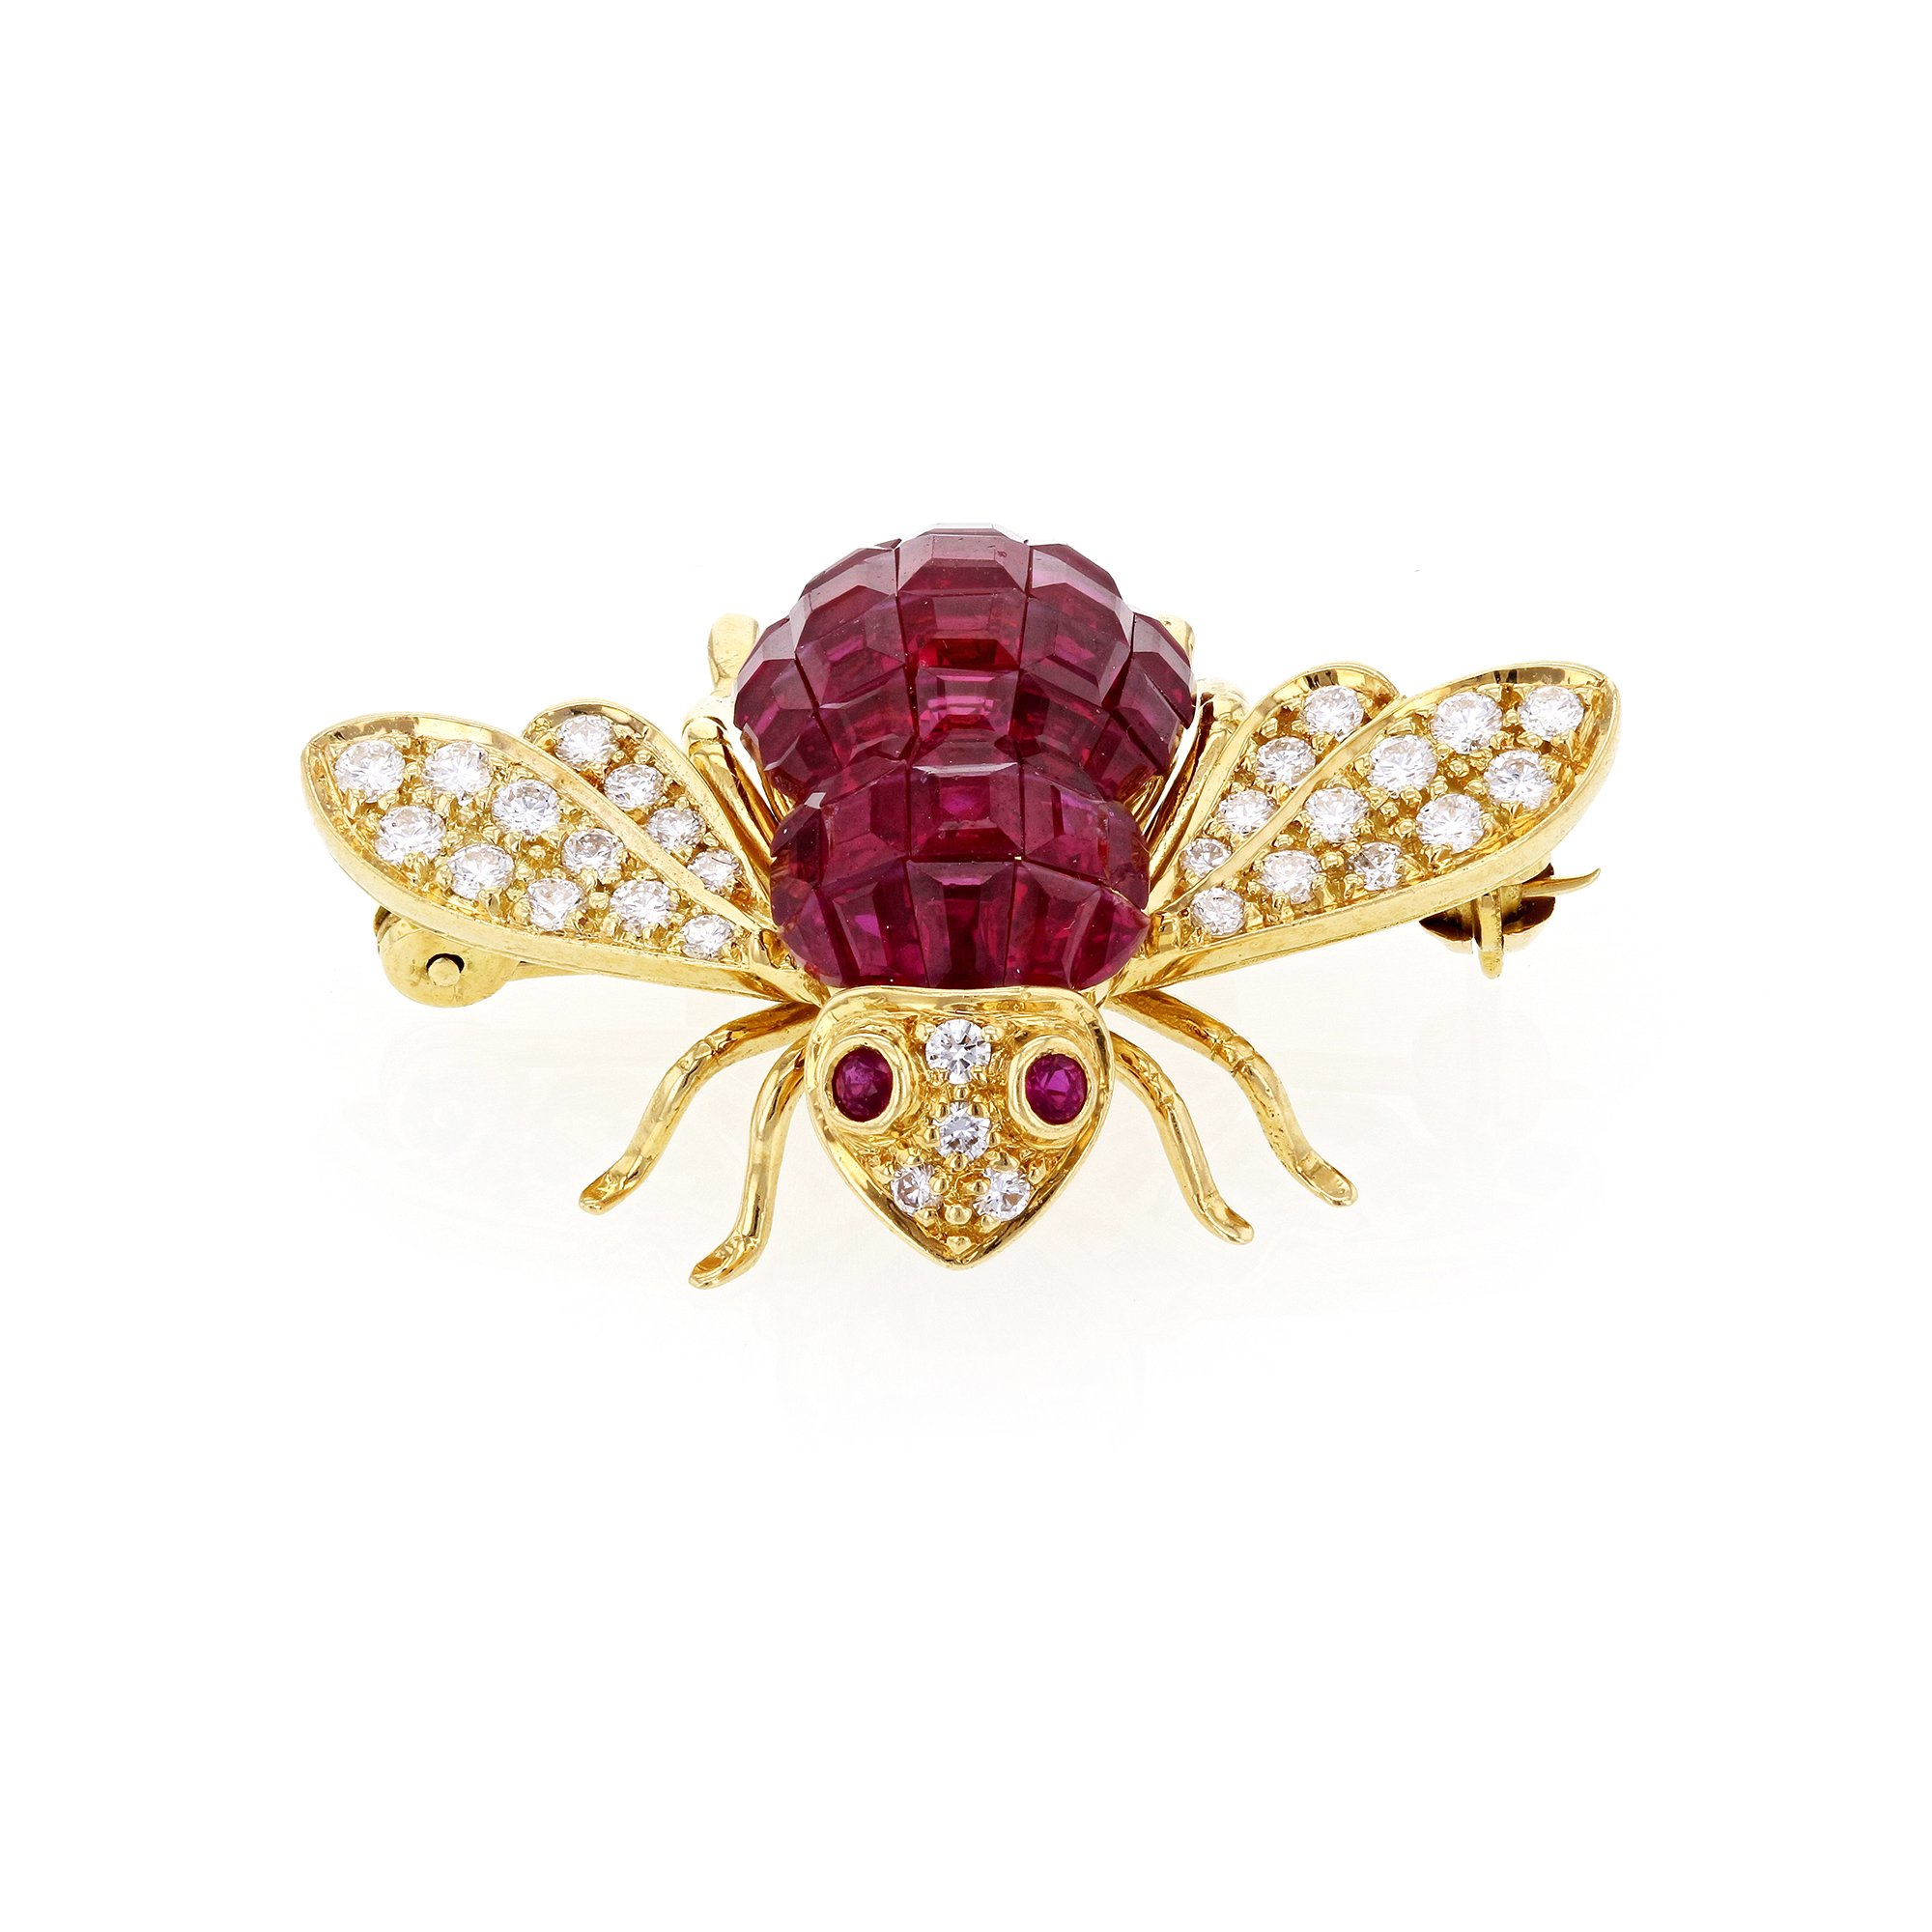 Sabbadini Gioielli Red Ruby and Diamond Bee Brooch 5 Carats TGW 18k Yellow Gold - Italian Fine Jewelry by Kobelli (Image #1)